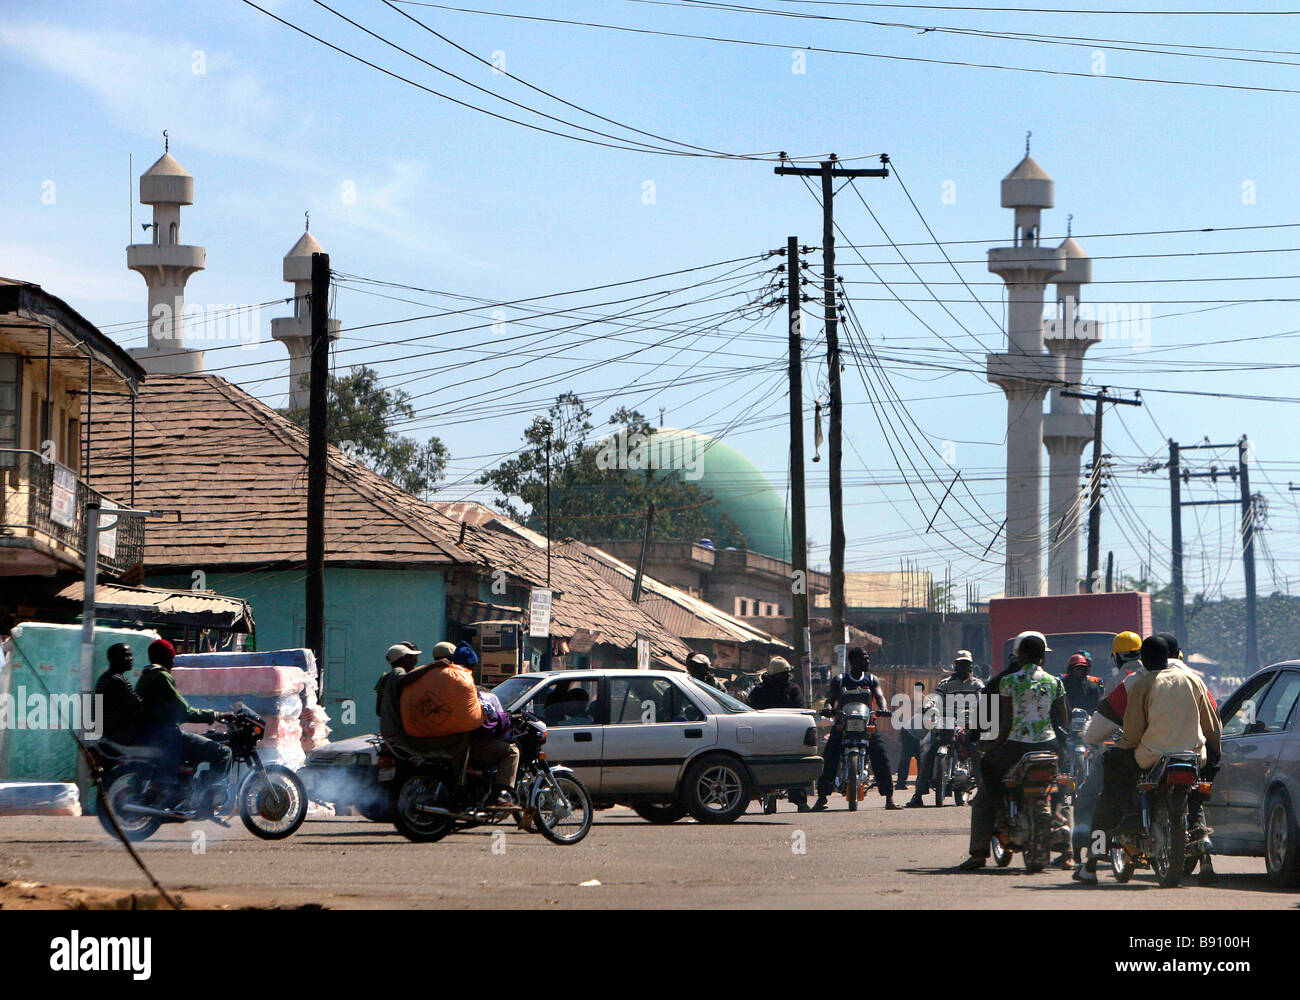 Nigeria: City of Jos with Central Mosque in the background - Stock Image